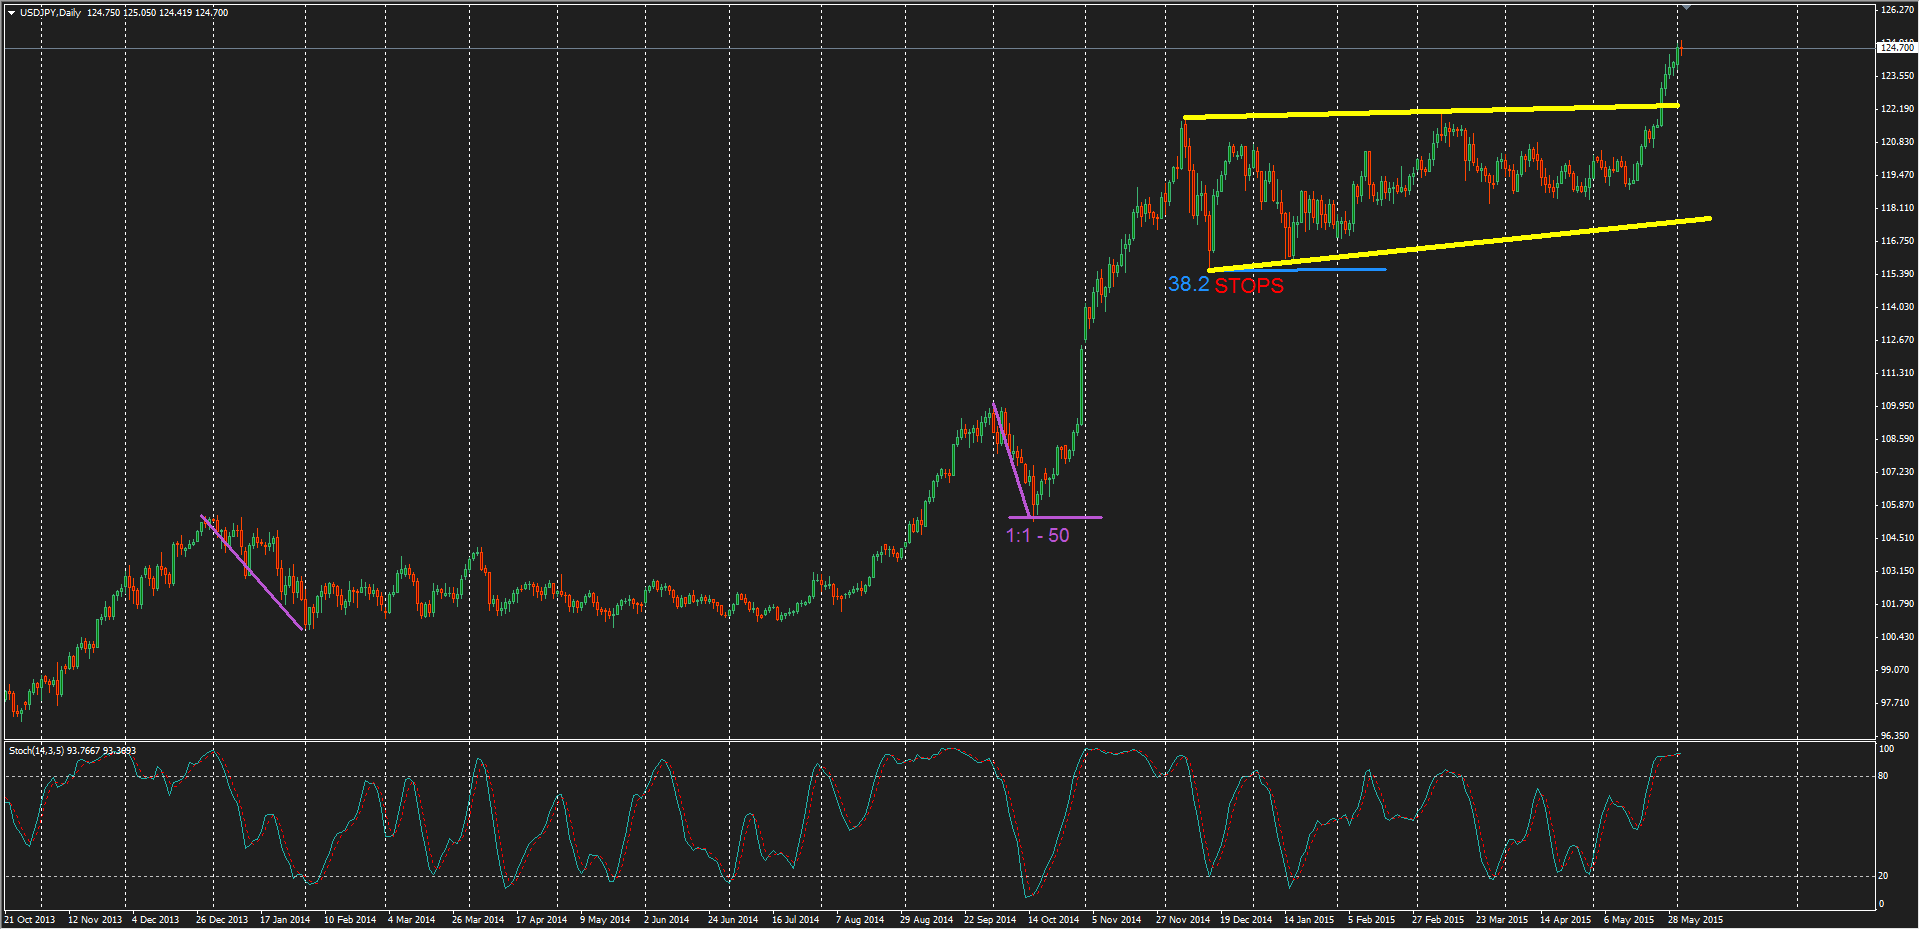 USD/JPY Daily Chart - SOURCE: AXITrader MT4